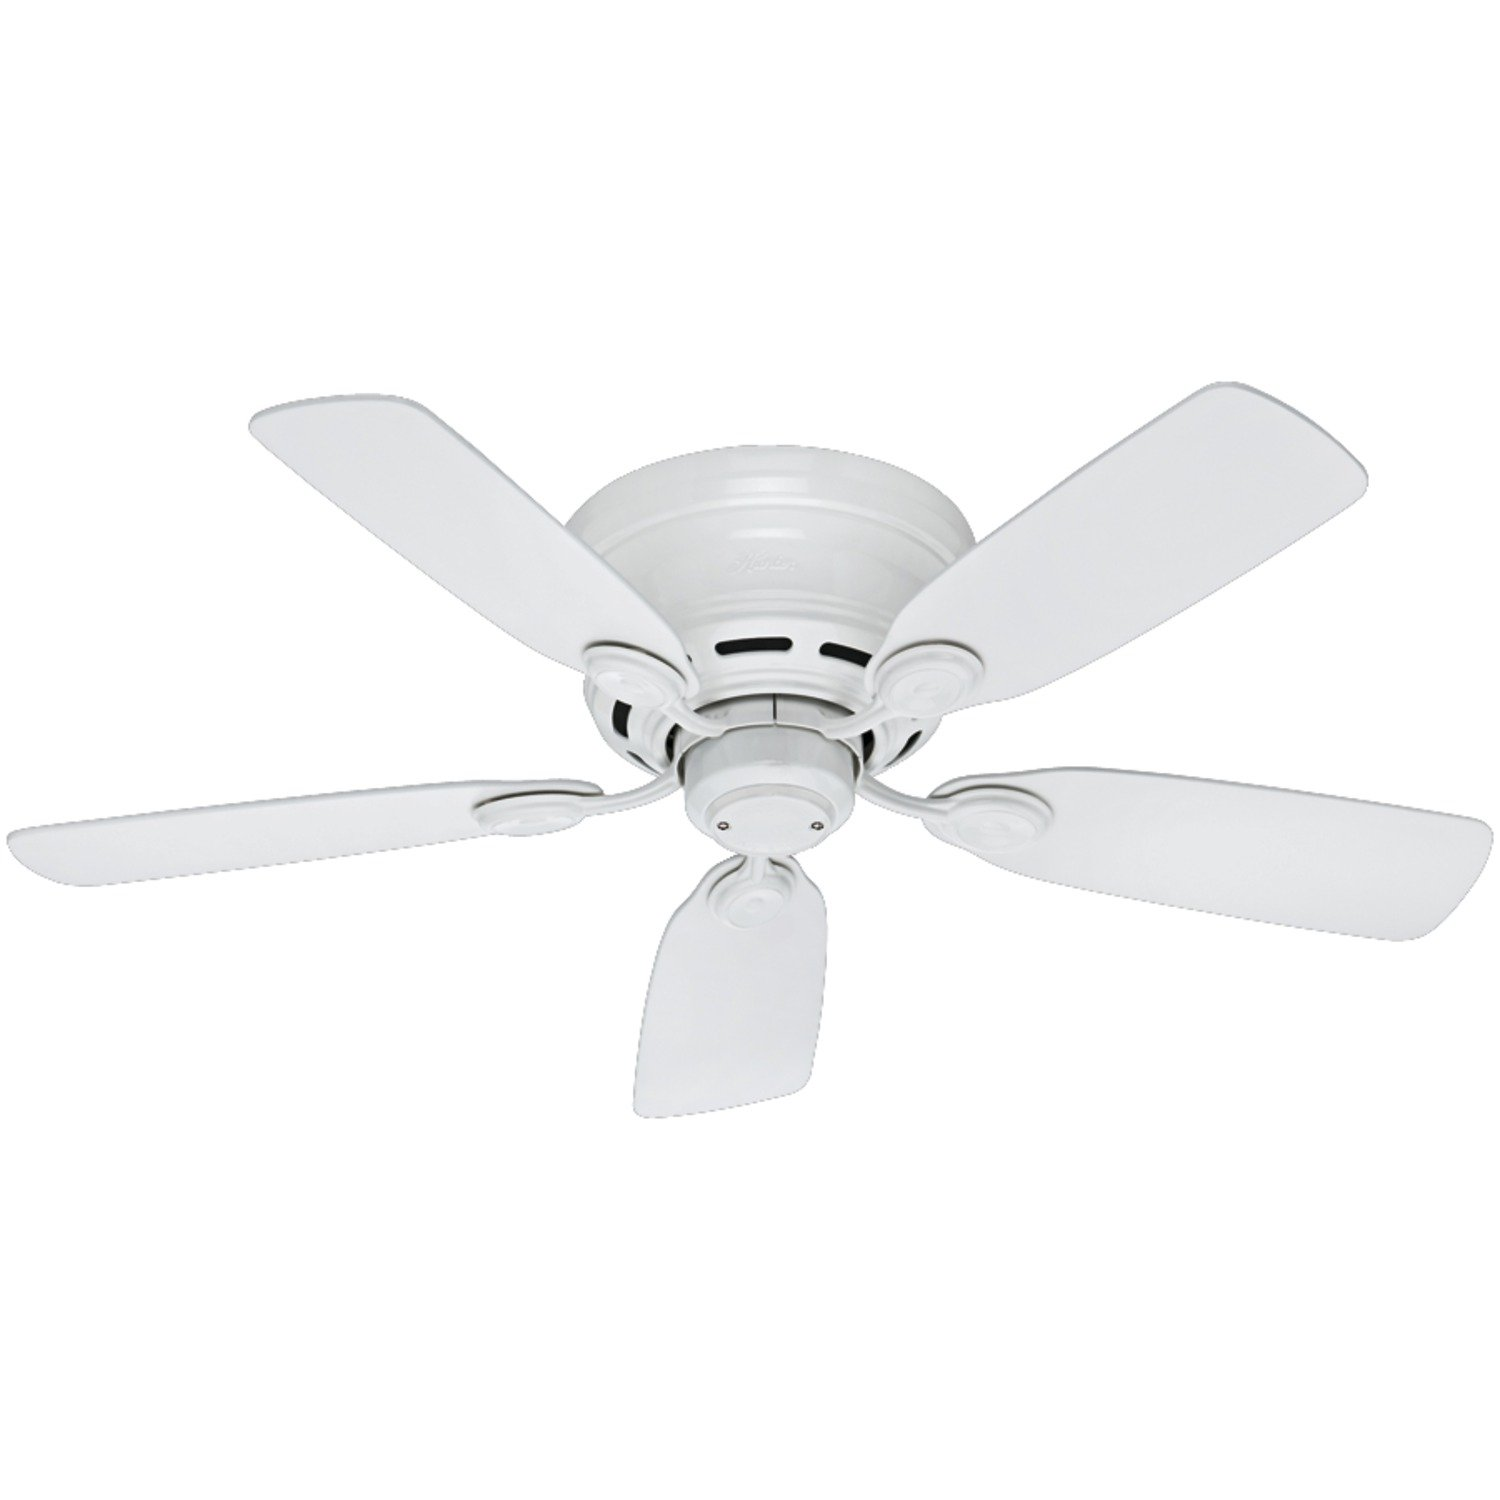 cool black ceiling fans. Hunter 51059 Low Profile IV 5-Blade Ceiling Fan, 42-Inch, White - Amazon.com Cool Black Fans E